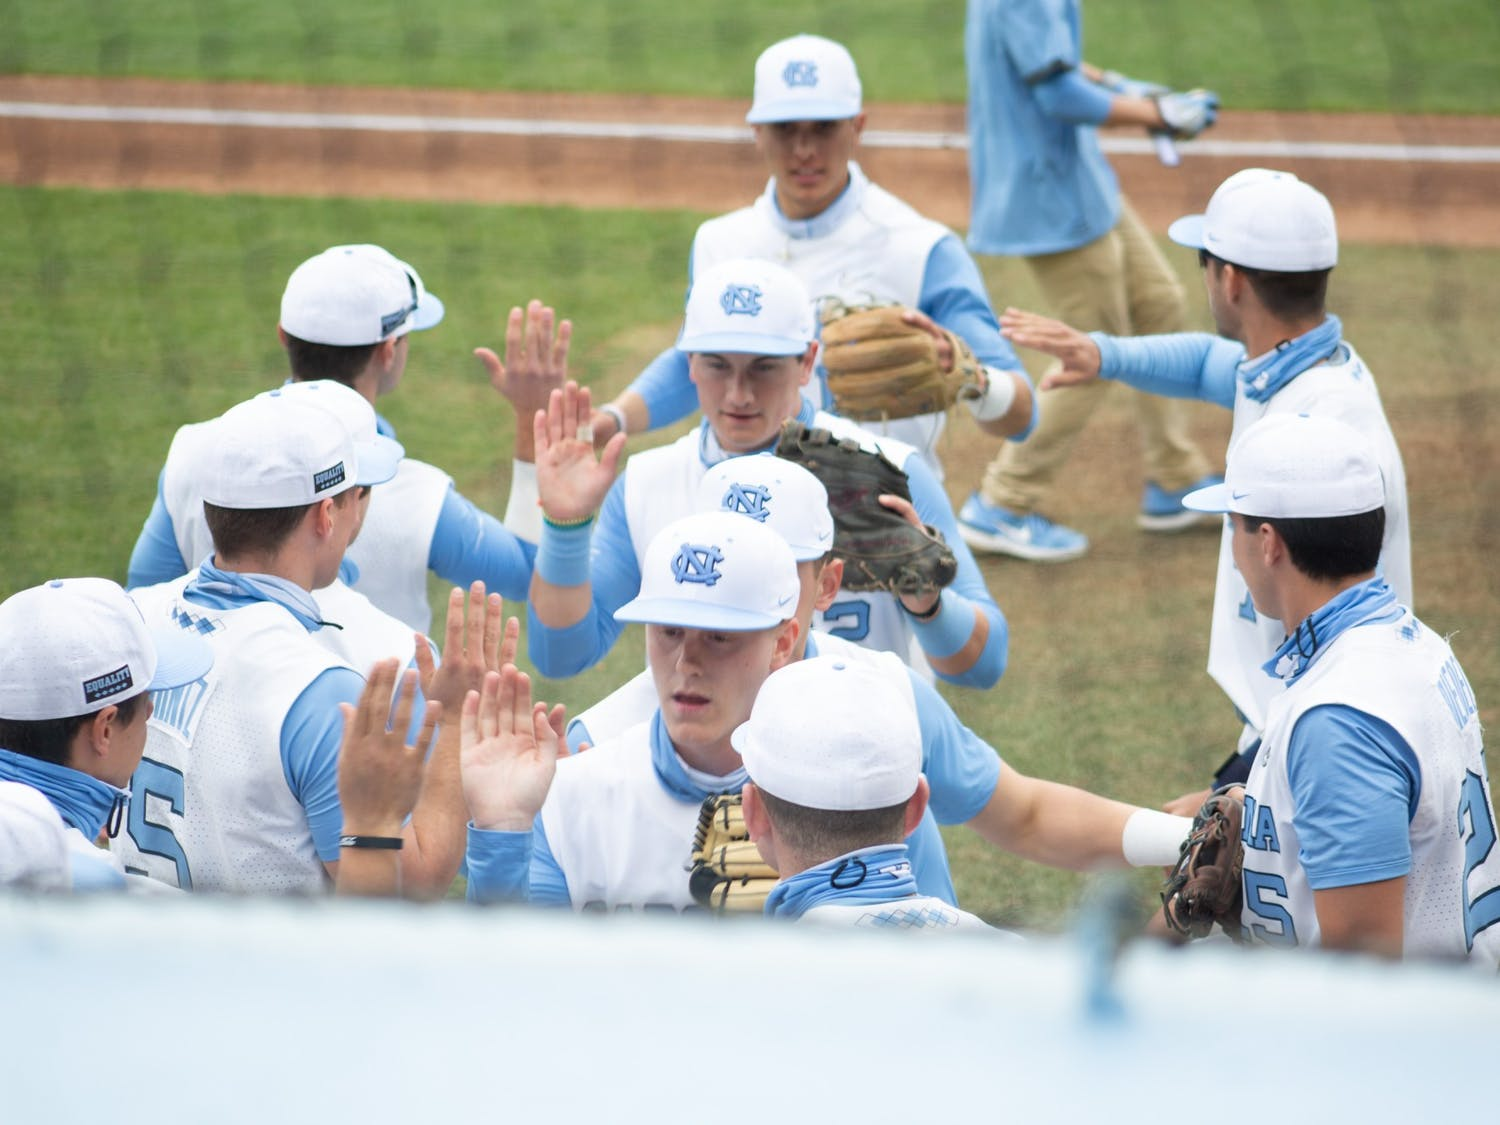 Tar Heel players get high fives from their teammates after a successful inning against University of Virginia at Boshamer Stadium on Saturday, Feb. 27, 2021. The Tar Heels won 2-1.